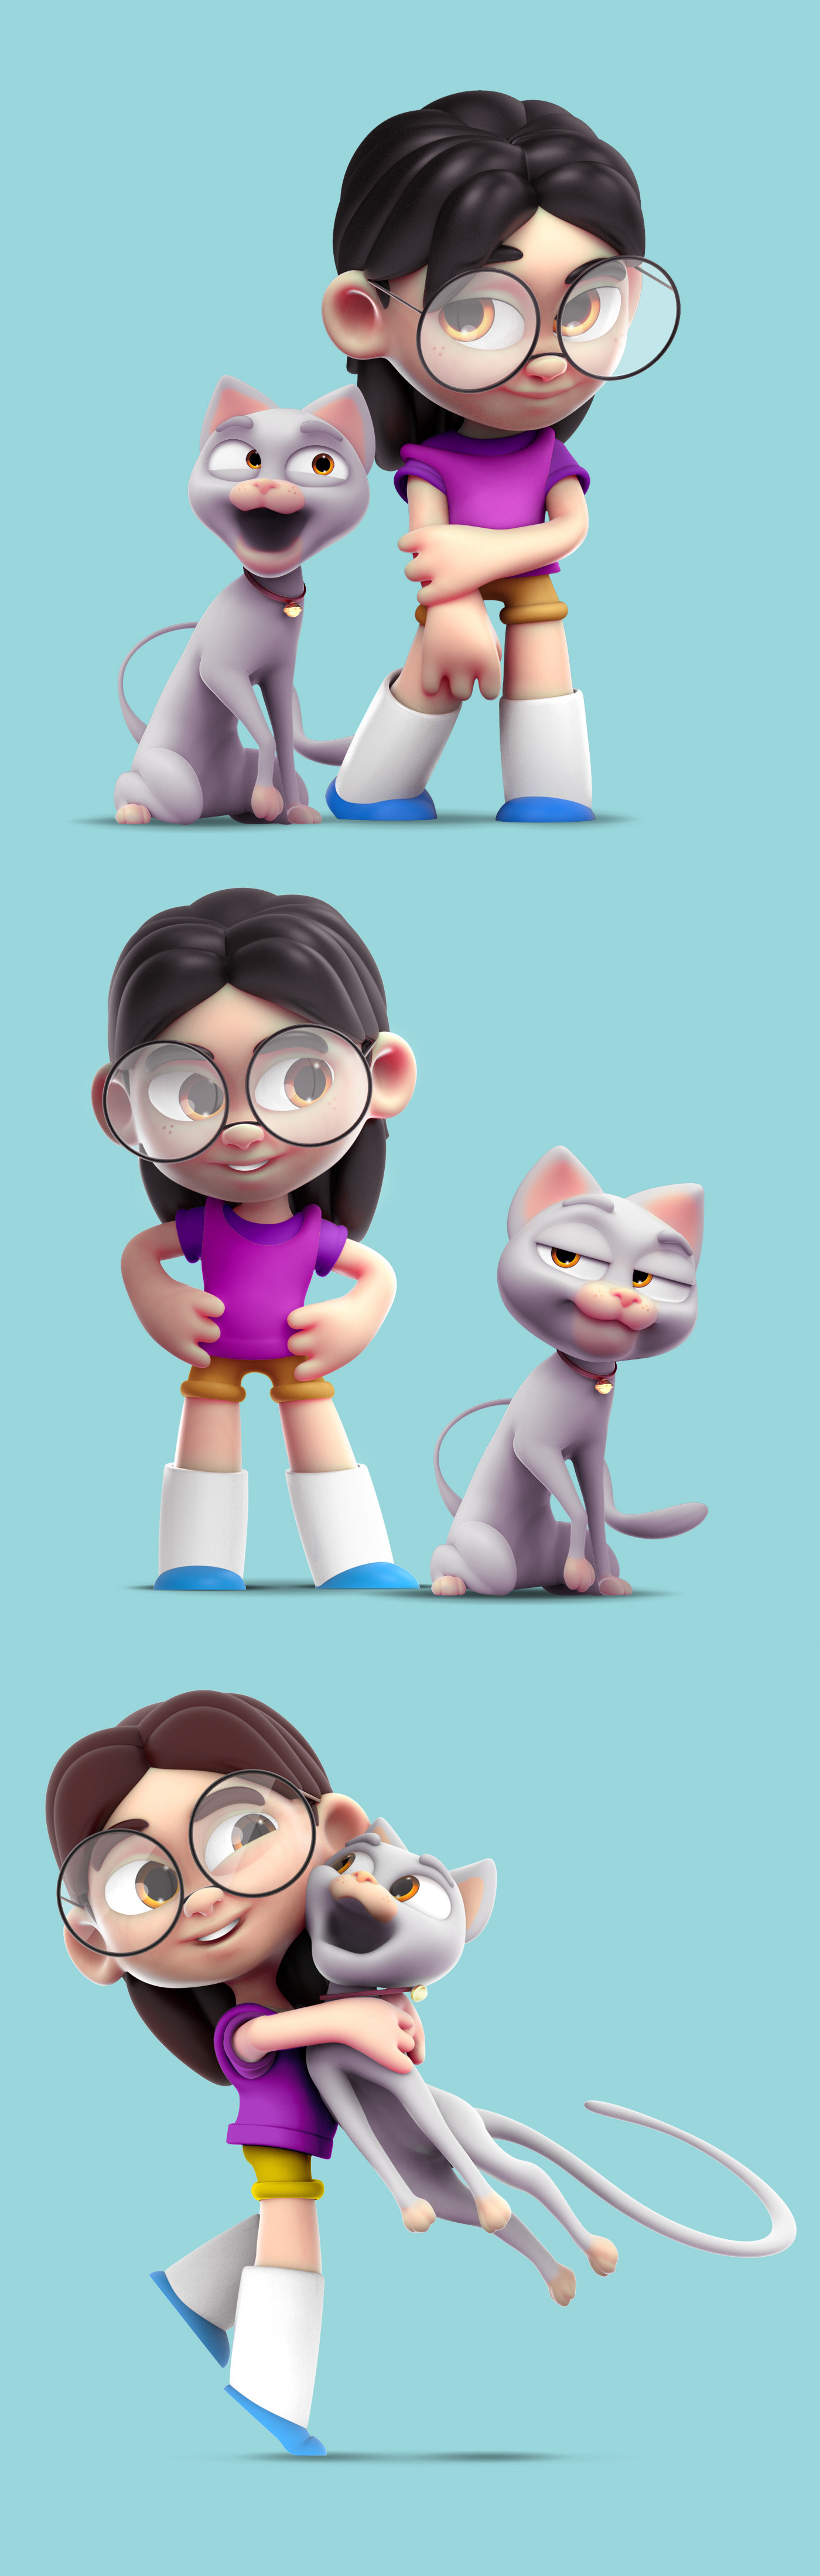 Illustration and Character Design